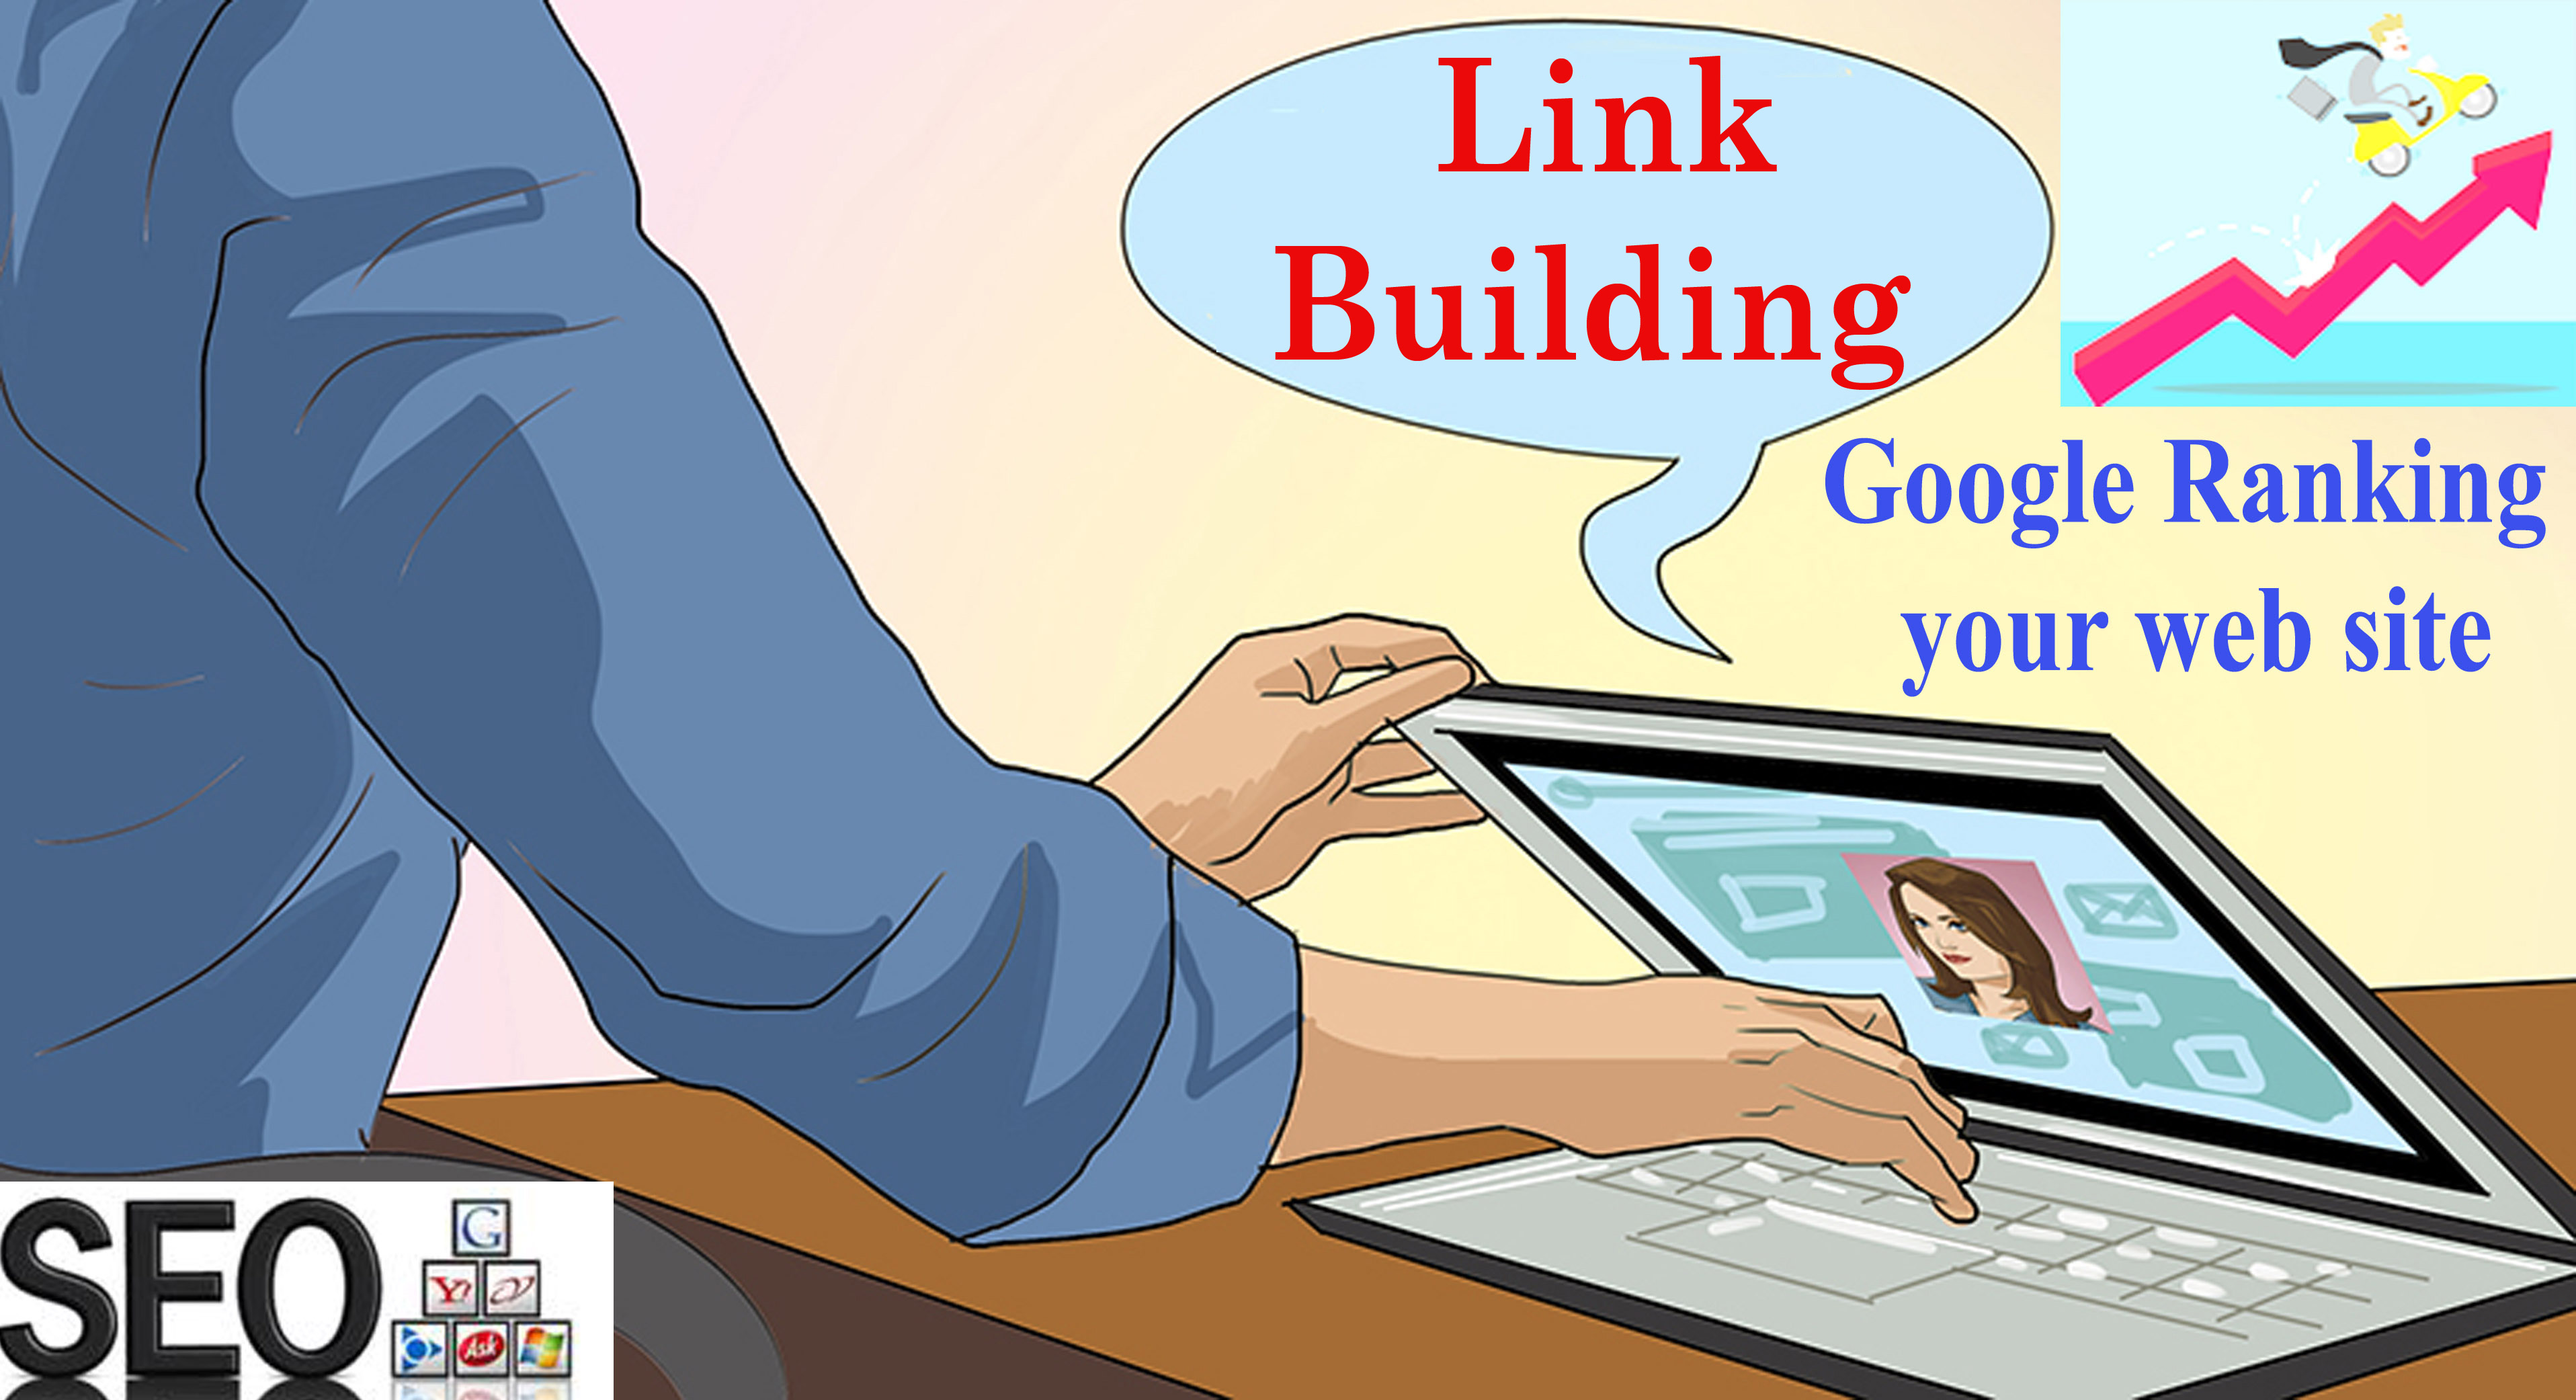 I will create 60 high authority link building backlinks